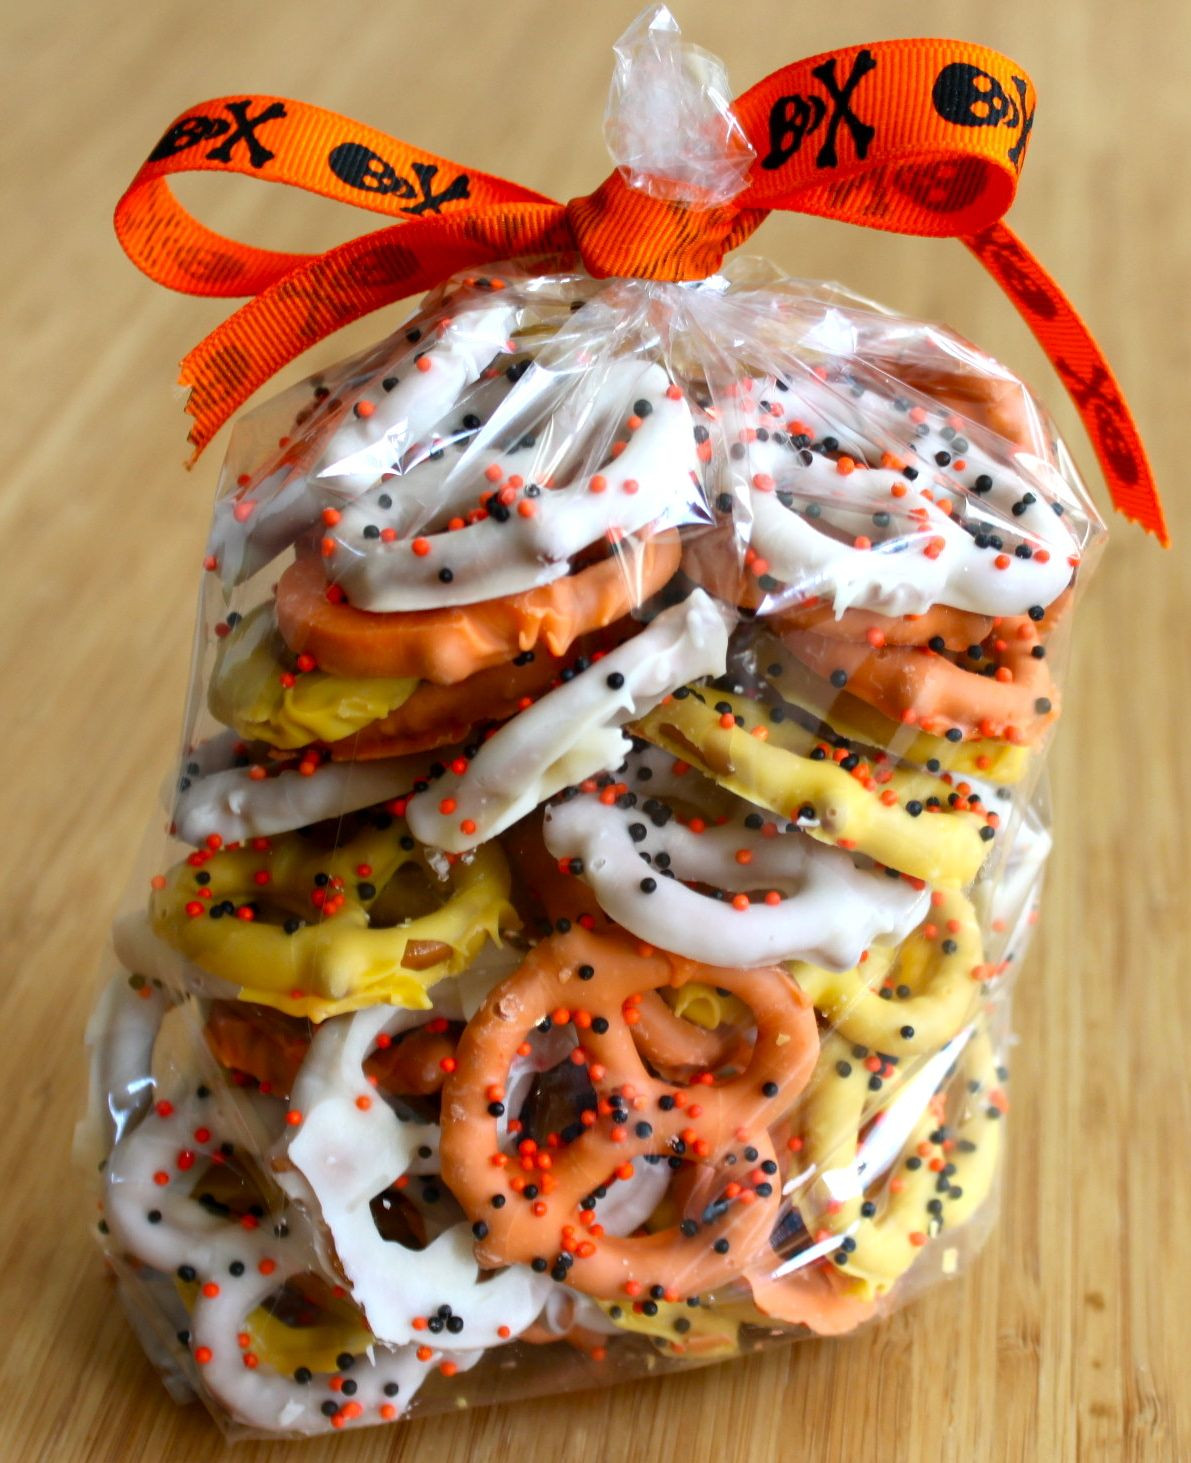 Halloween Pretzels Treats  Baked Perfection Candy Corn themed Chocolate Covered Pretzels